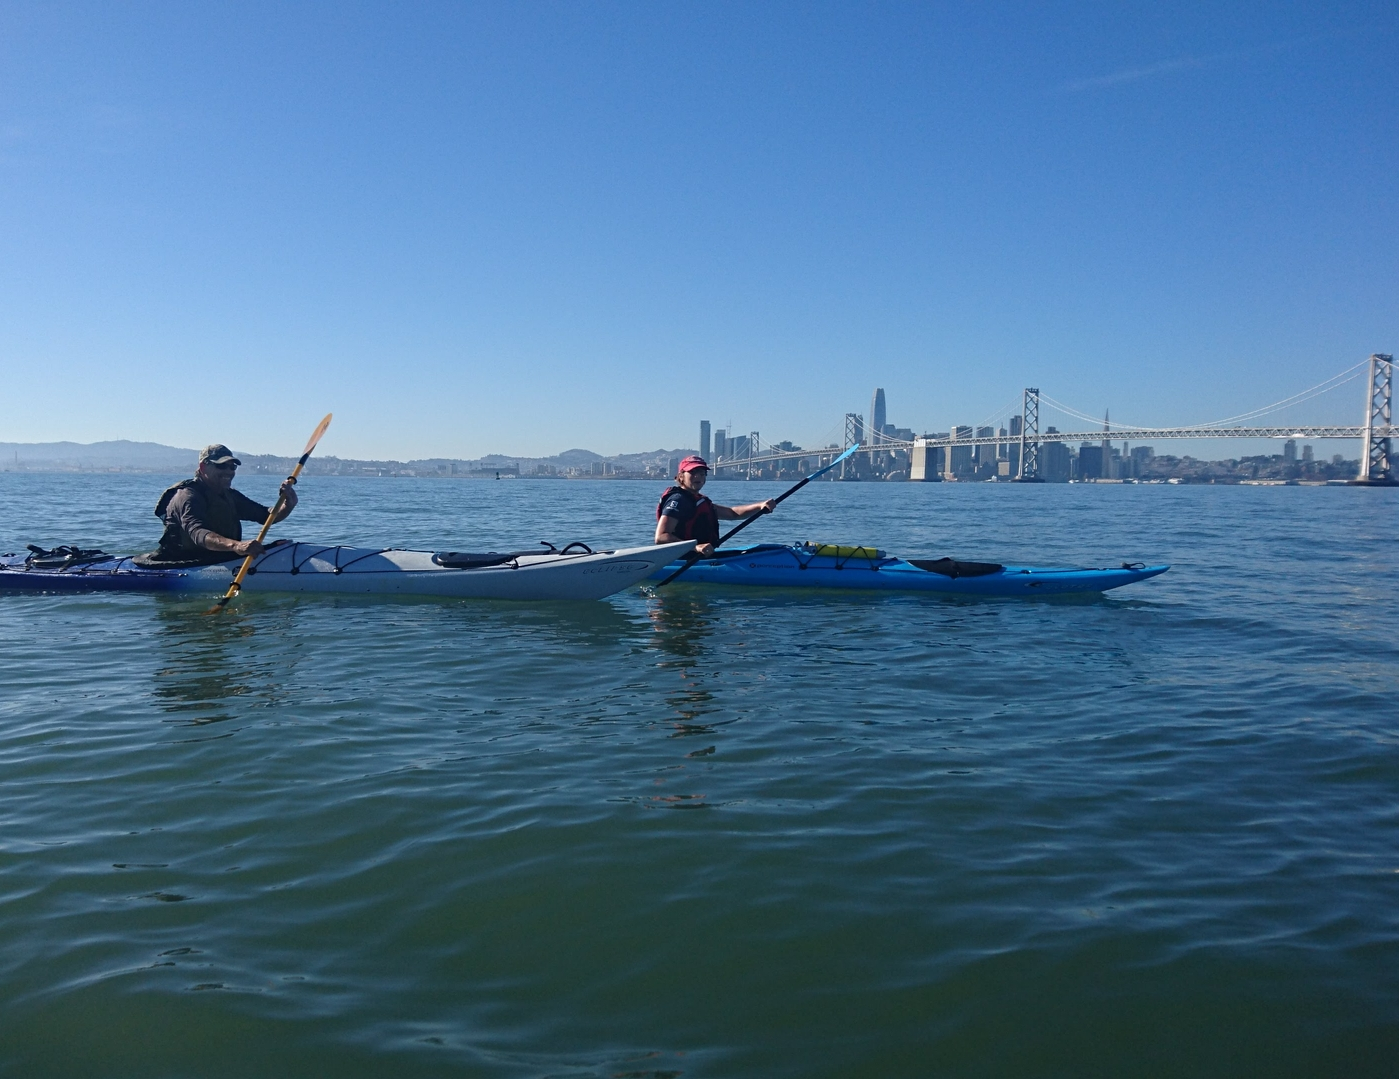 Stacked Adventures - Stacked Adventures offers all things kayak with its kayaking excursions and lessons around the bay.190 Central Ave, Alamedastackedadventures.com